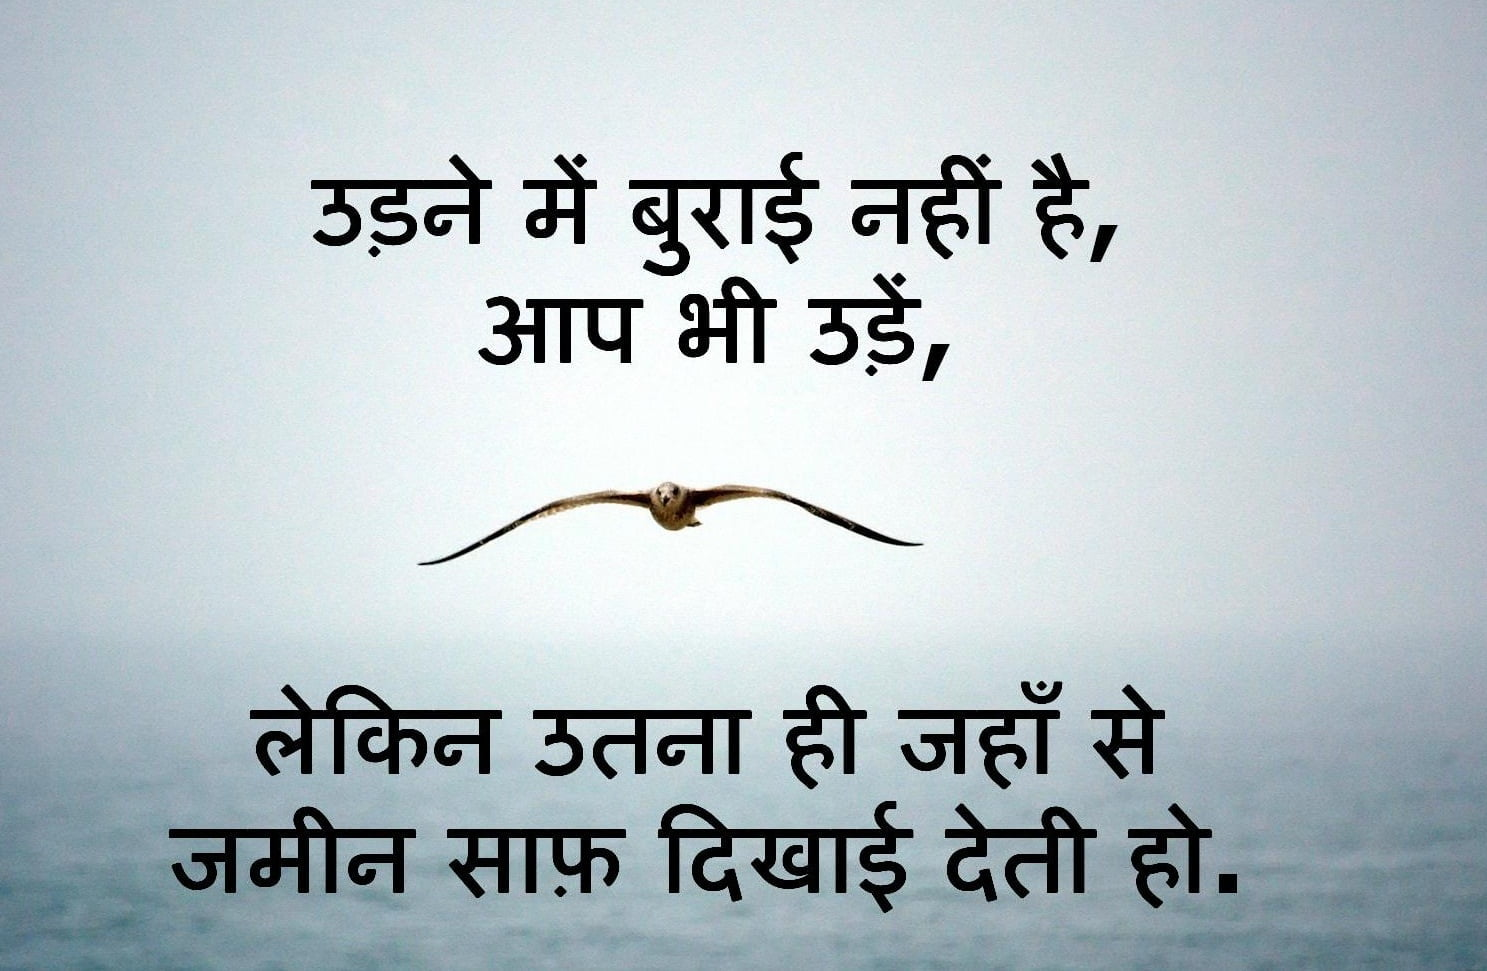 Best Inspiring Attitude Quotes In Hindi With Images अच छ स च